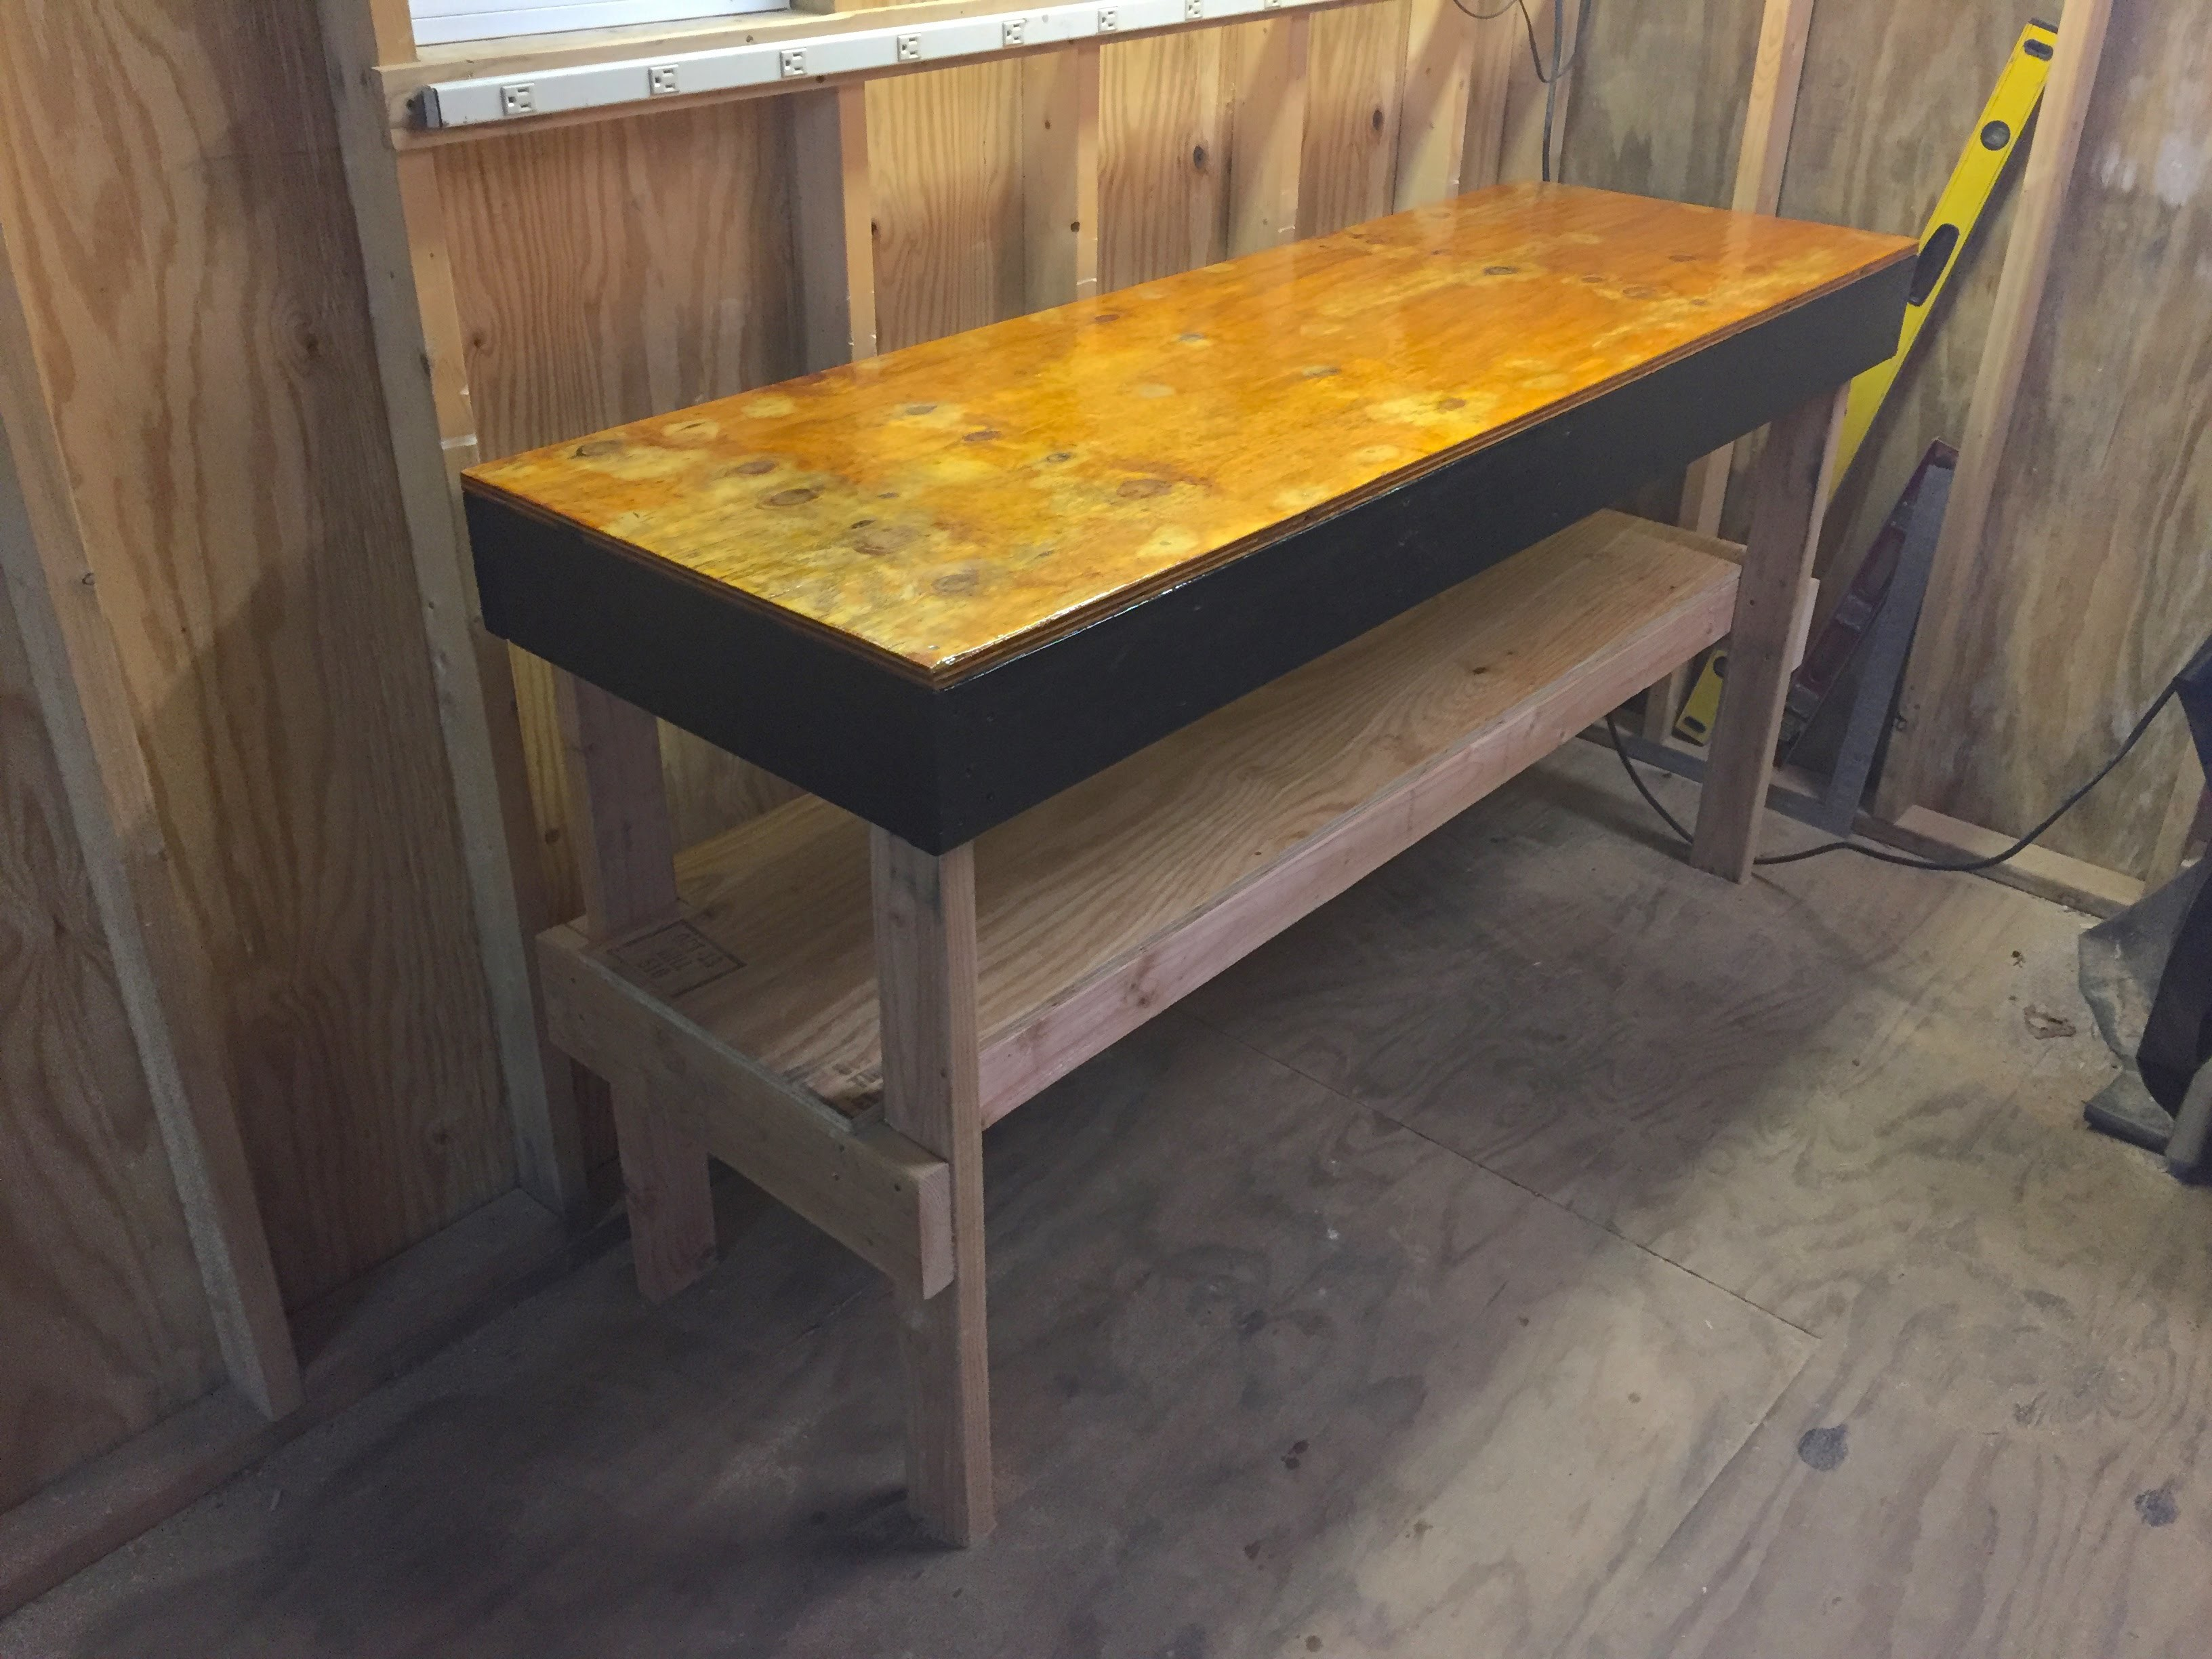 """DIY How to Build a Heavy Duty Workbench (6'x2'x38"""") Easy Instructions, for under $50"""